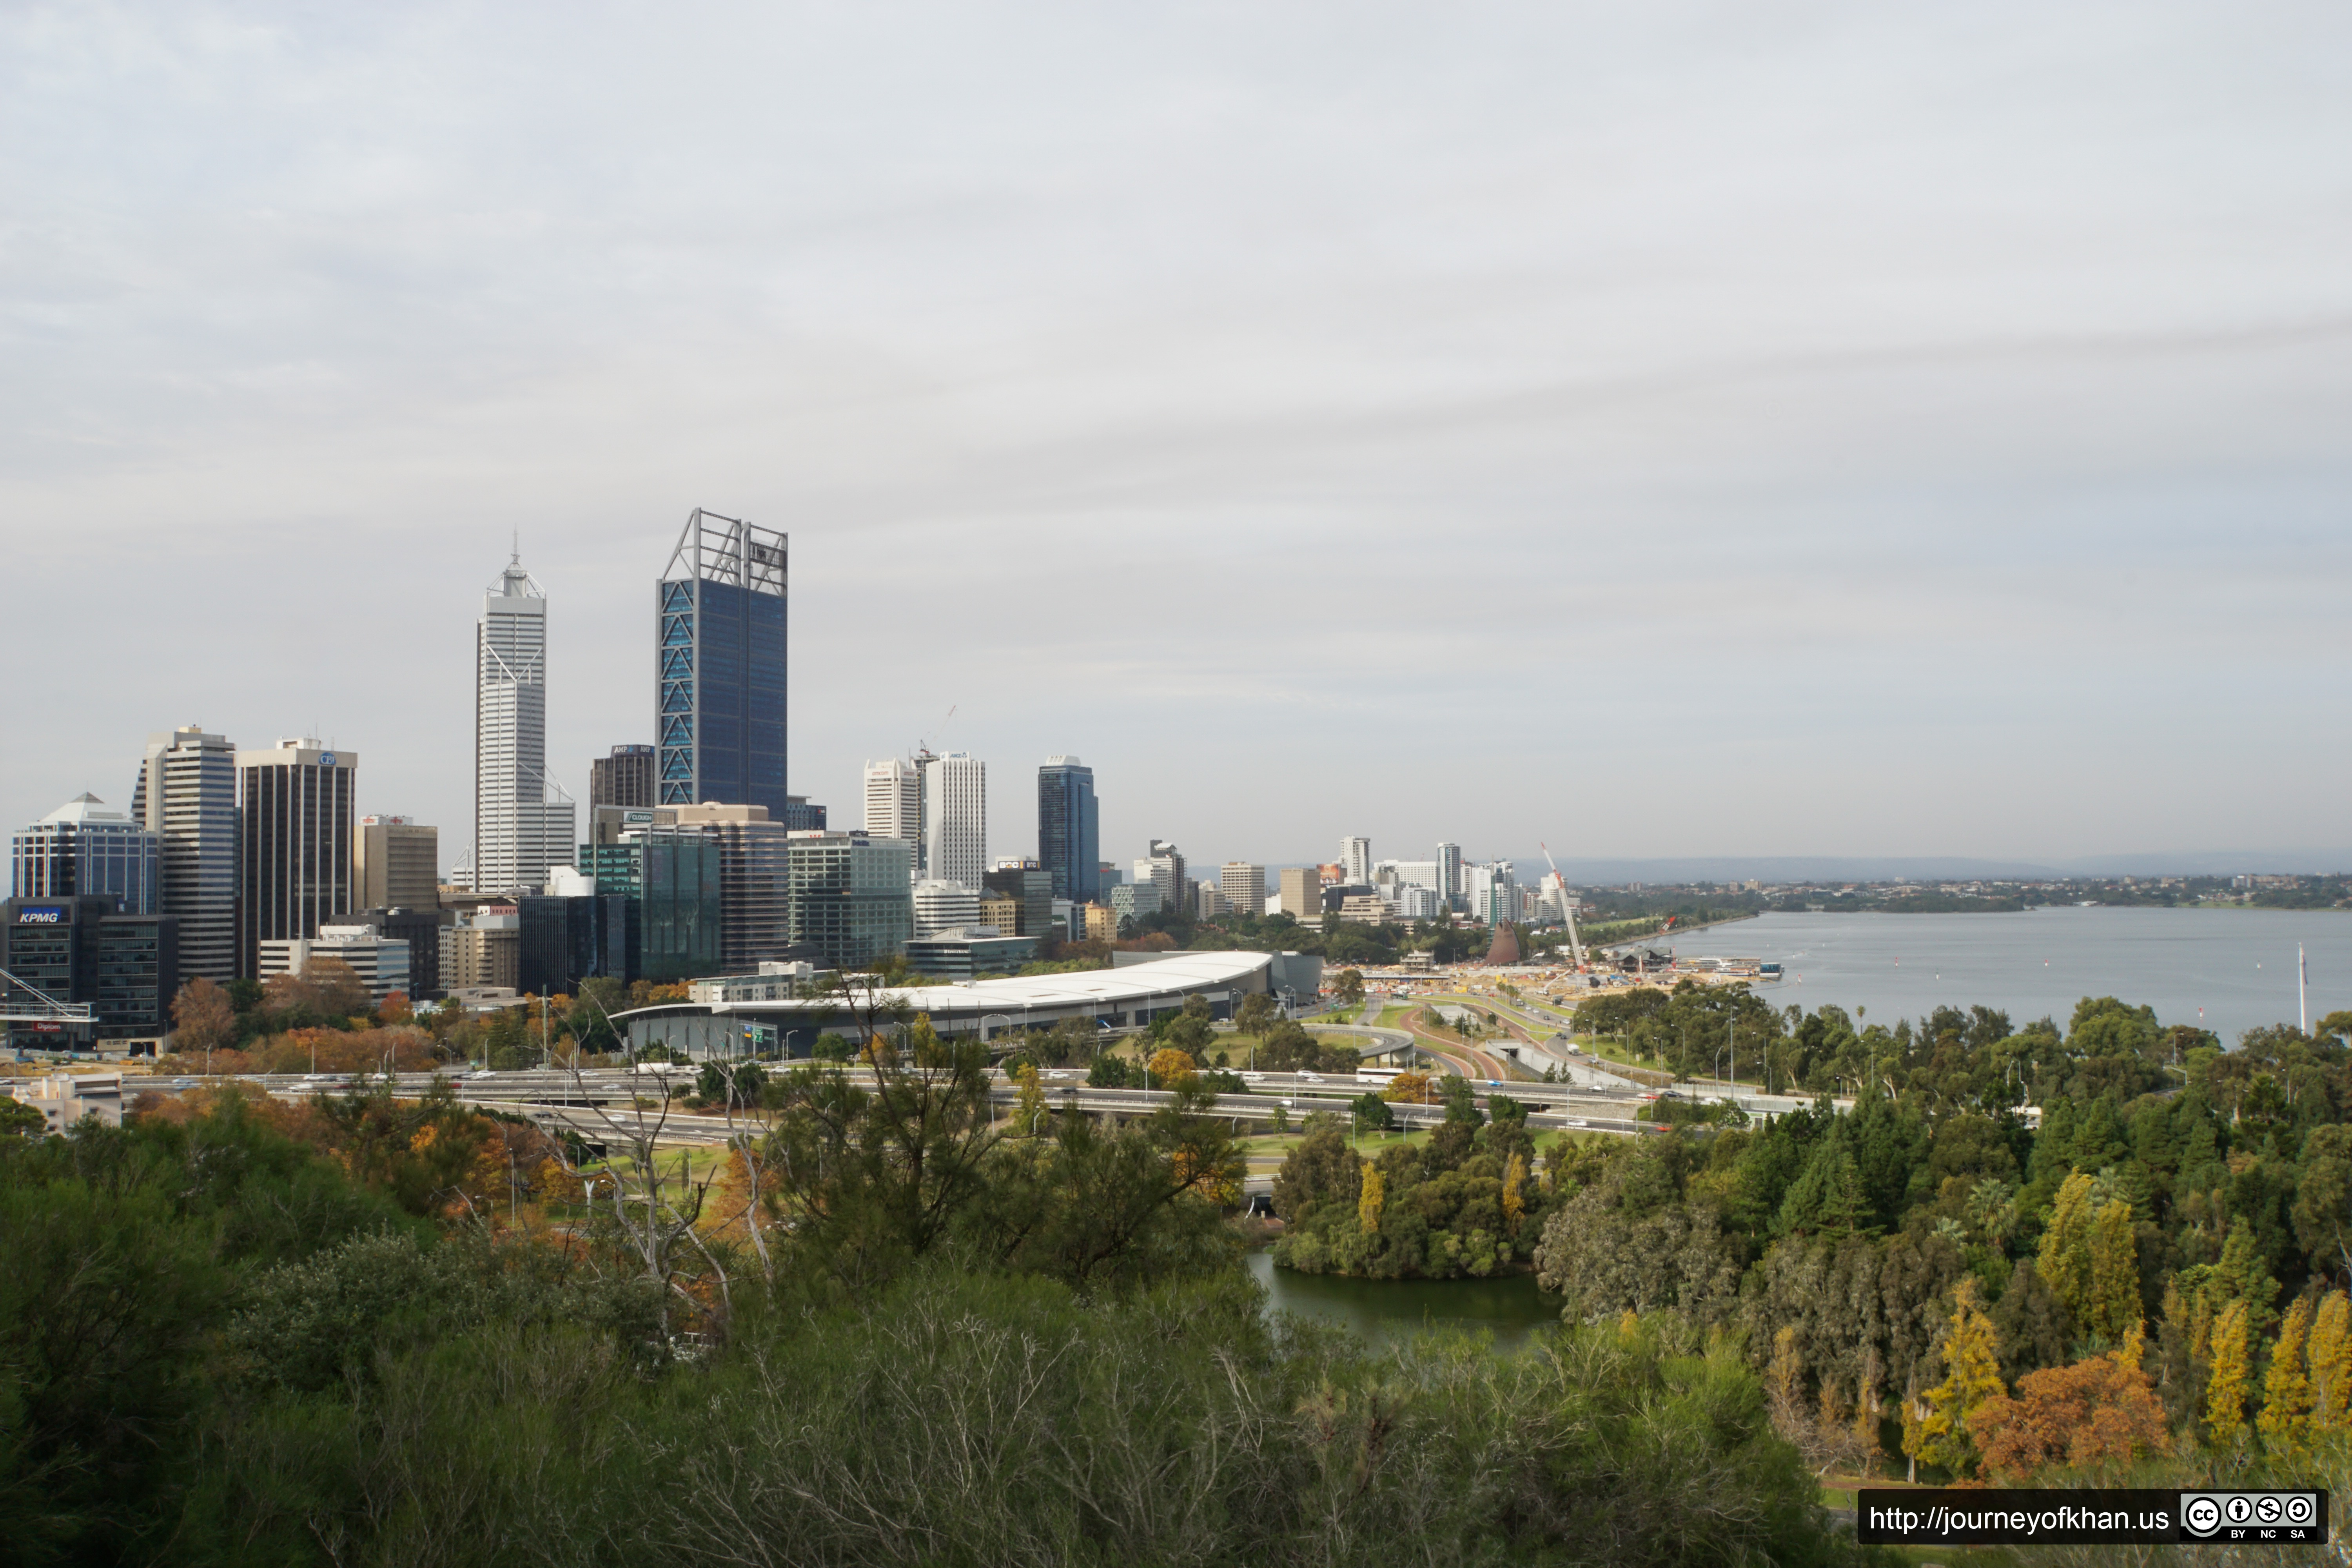 City of Perth (High Resolution)